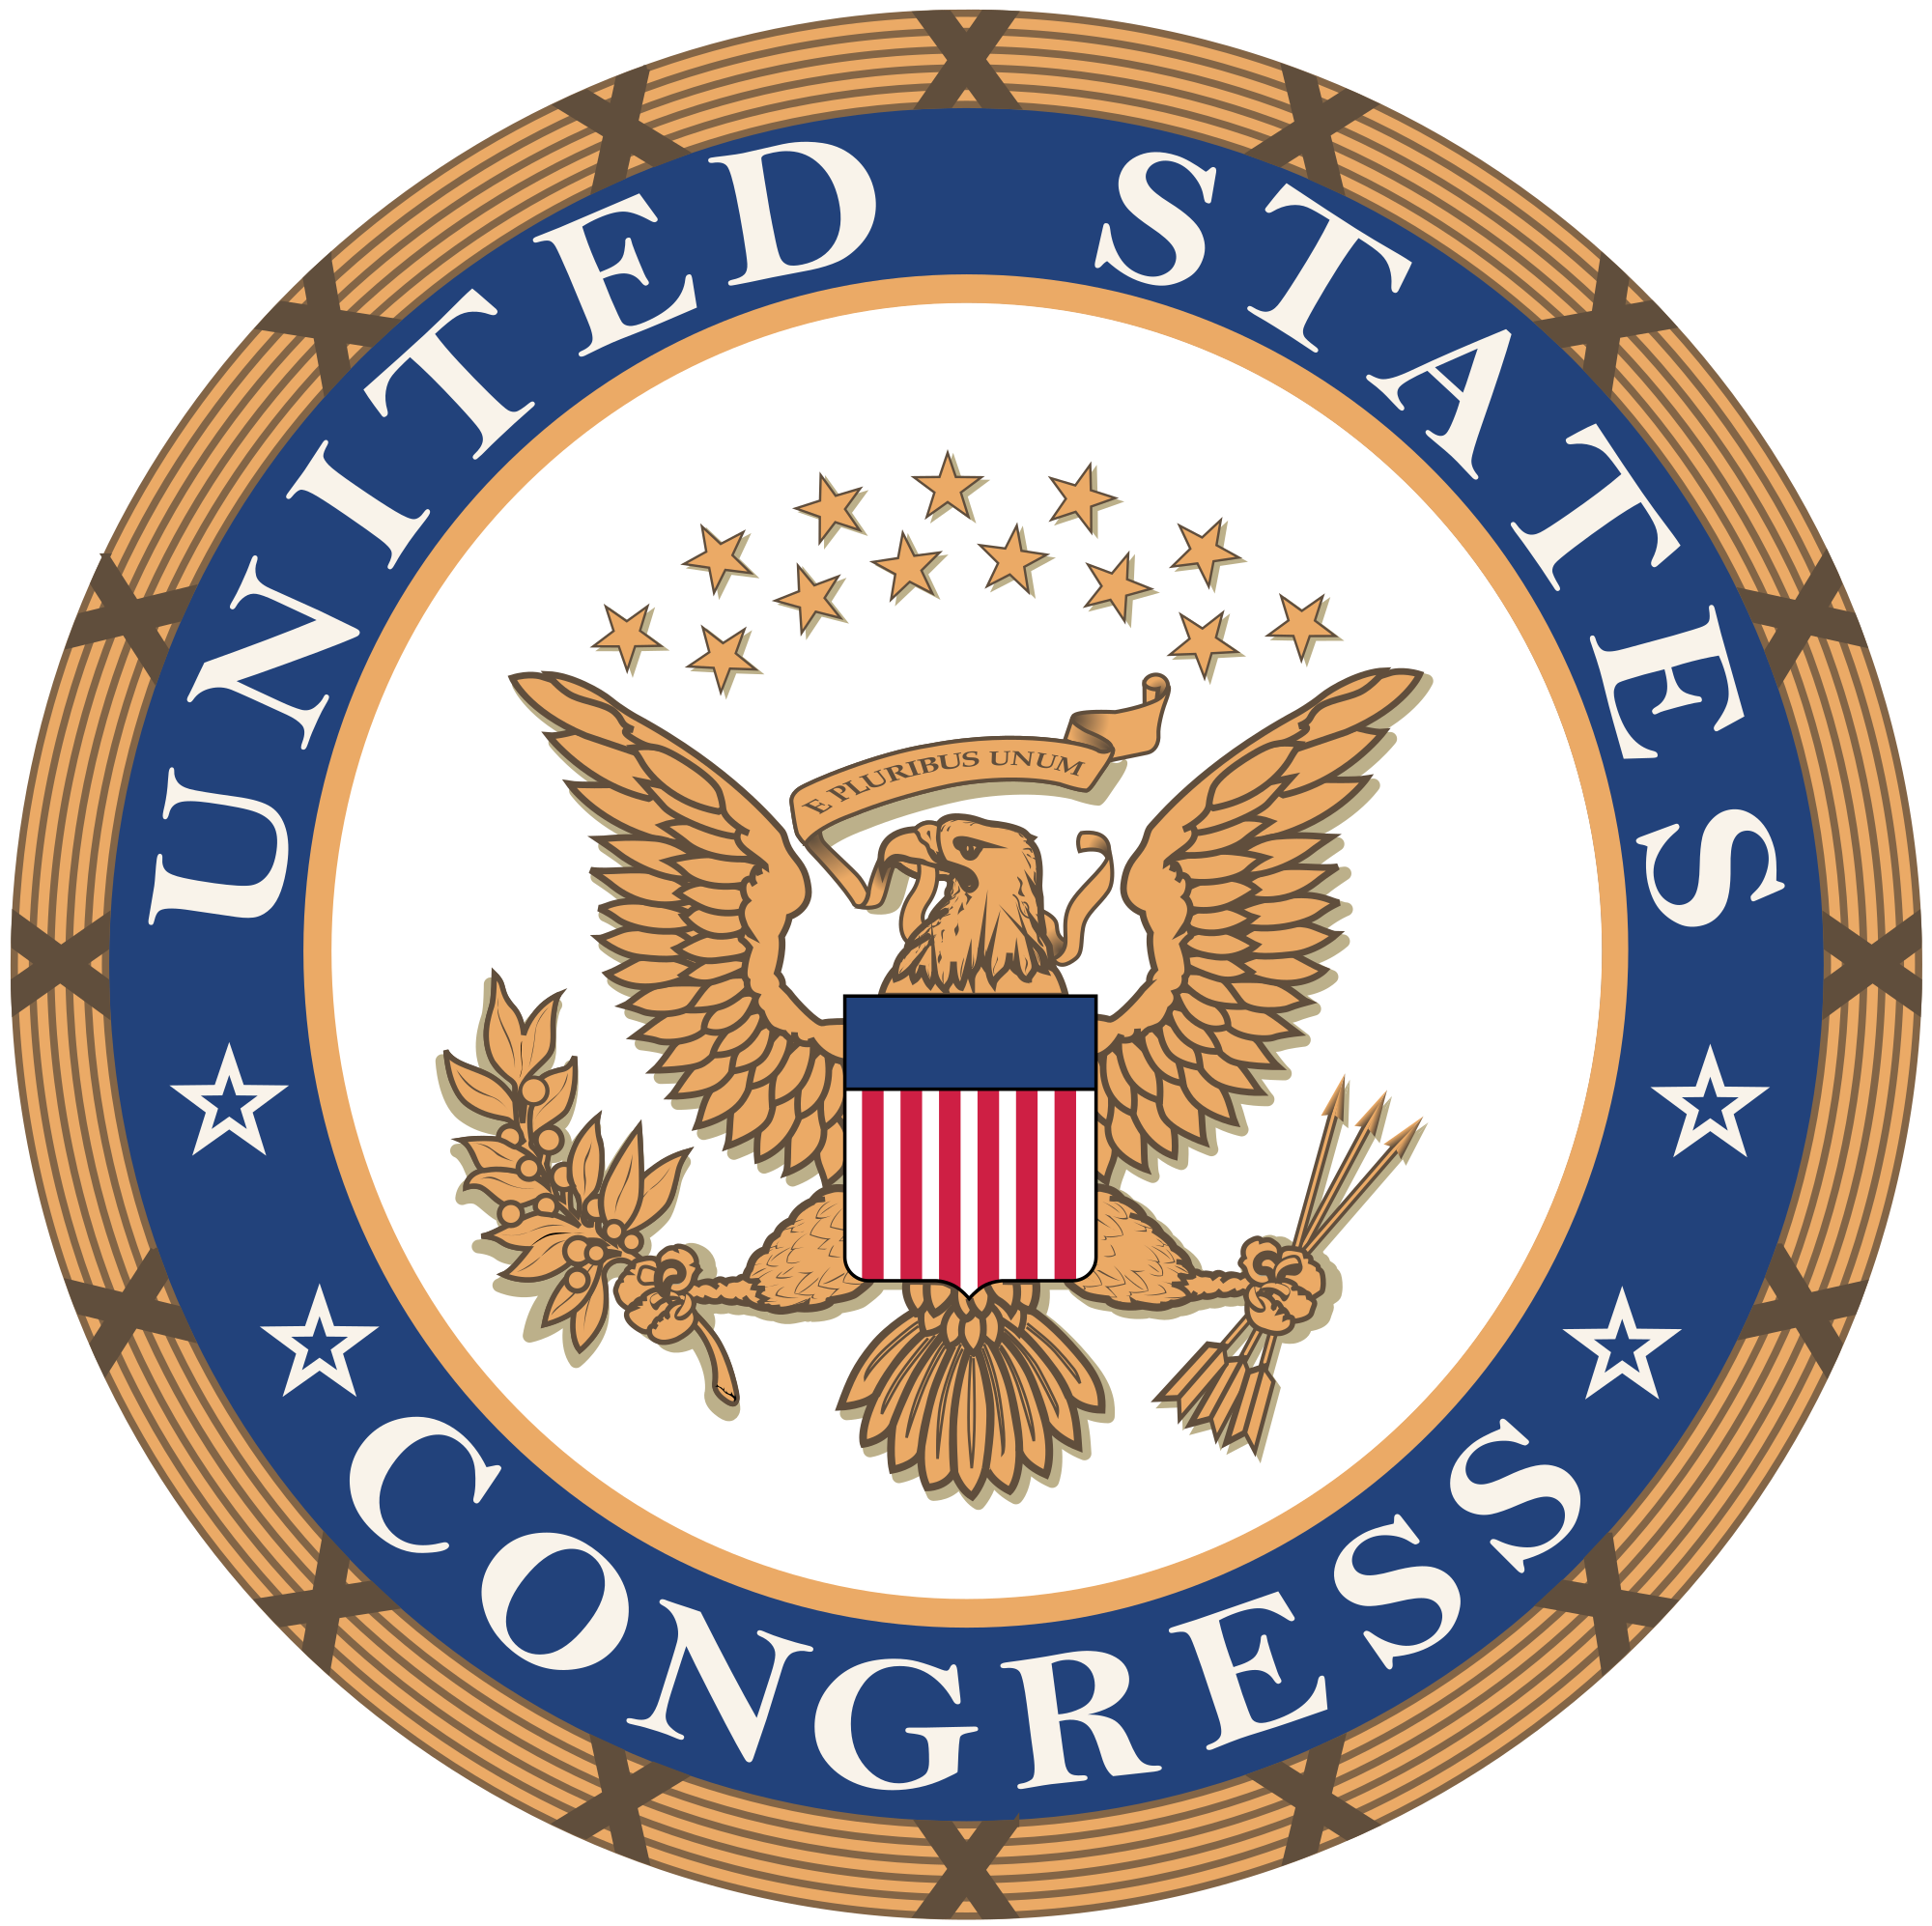 United states congress wikipedia. Democracy clipart bicameral legislature